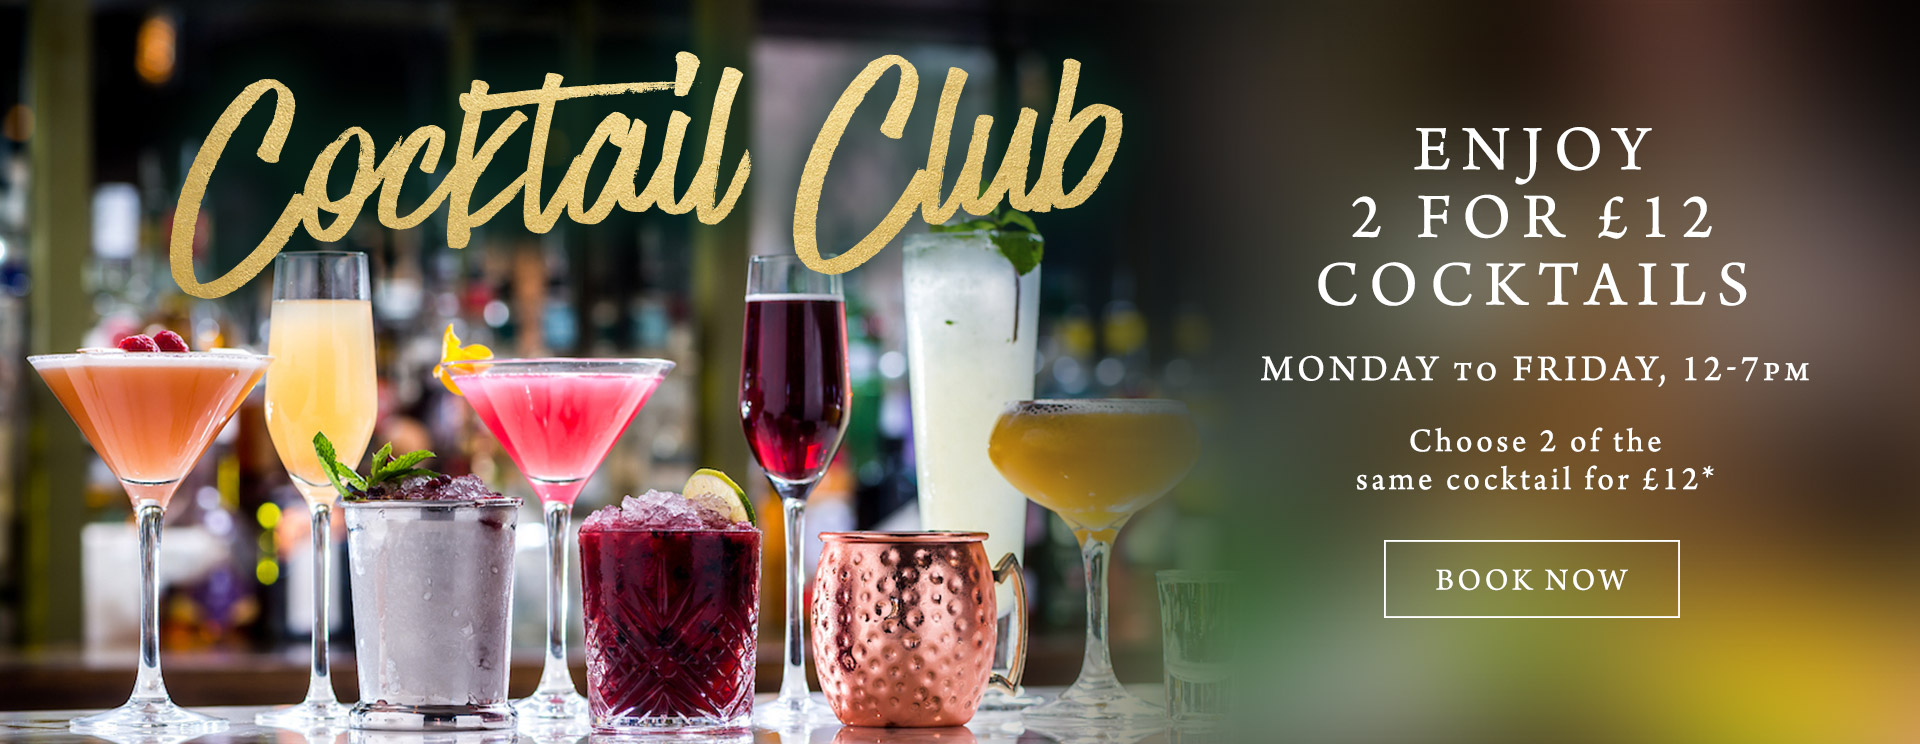 2 for £12 cocktails at The Arkley